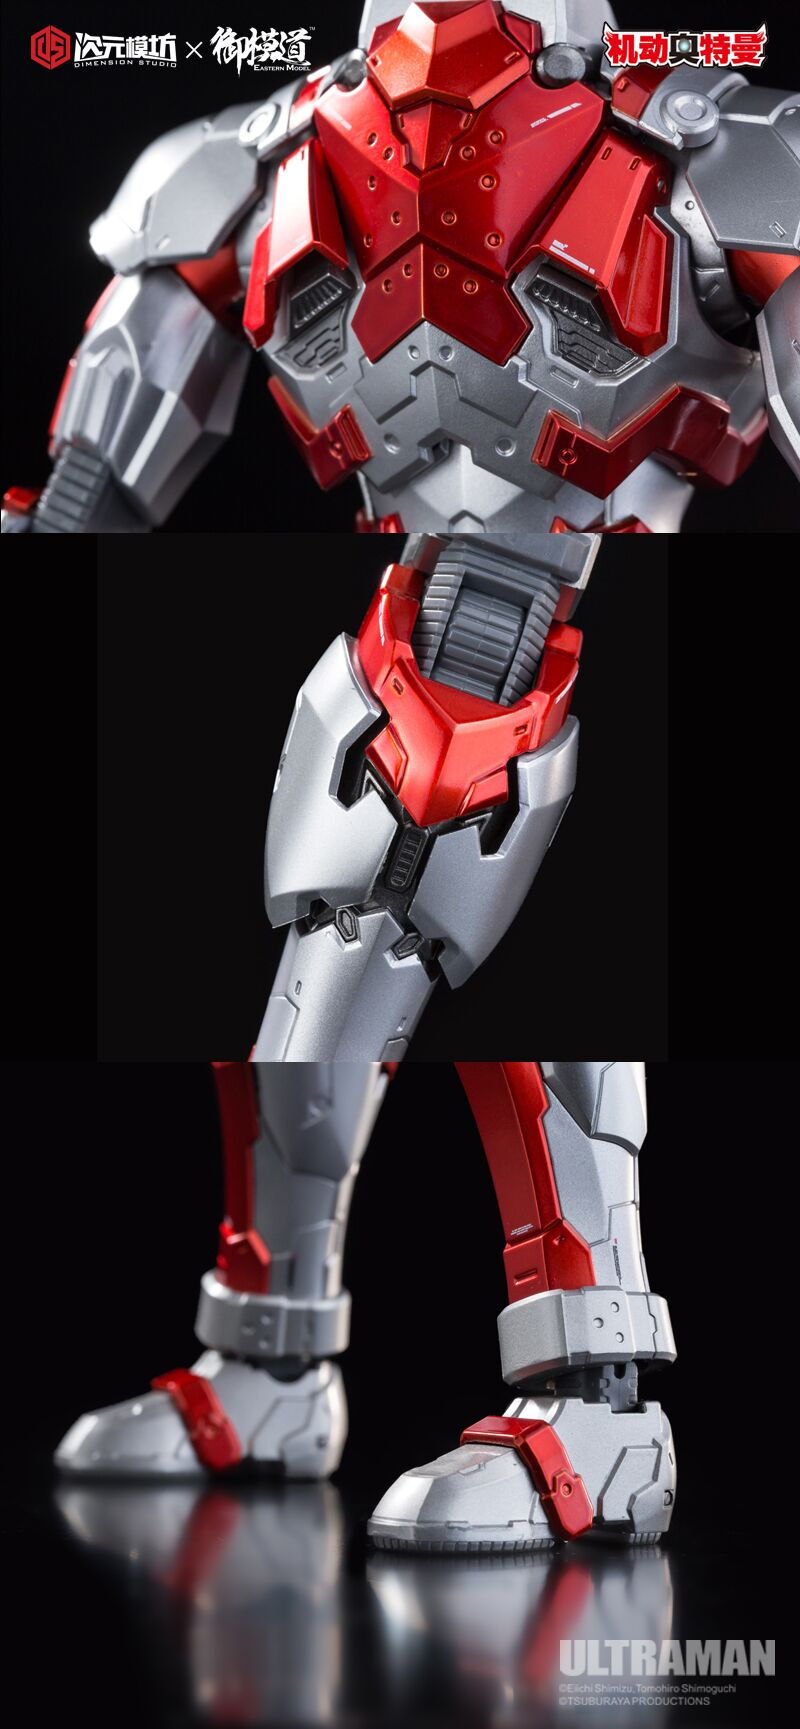 male - NEW PRODUCT: Dimension Mould X X Moto Road: 1/6 Mobile Ultraman Alloy Finished Series - Ess Altman 18214010